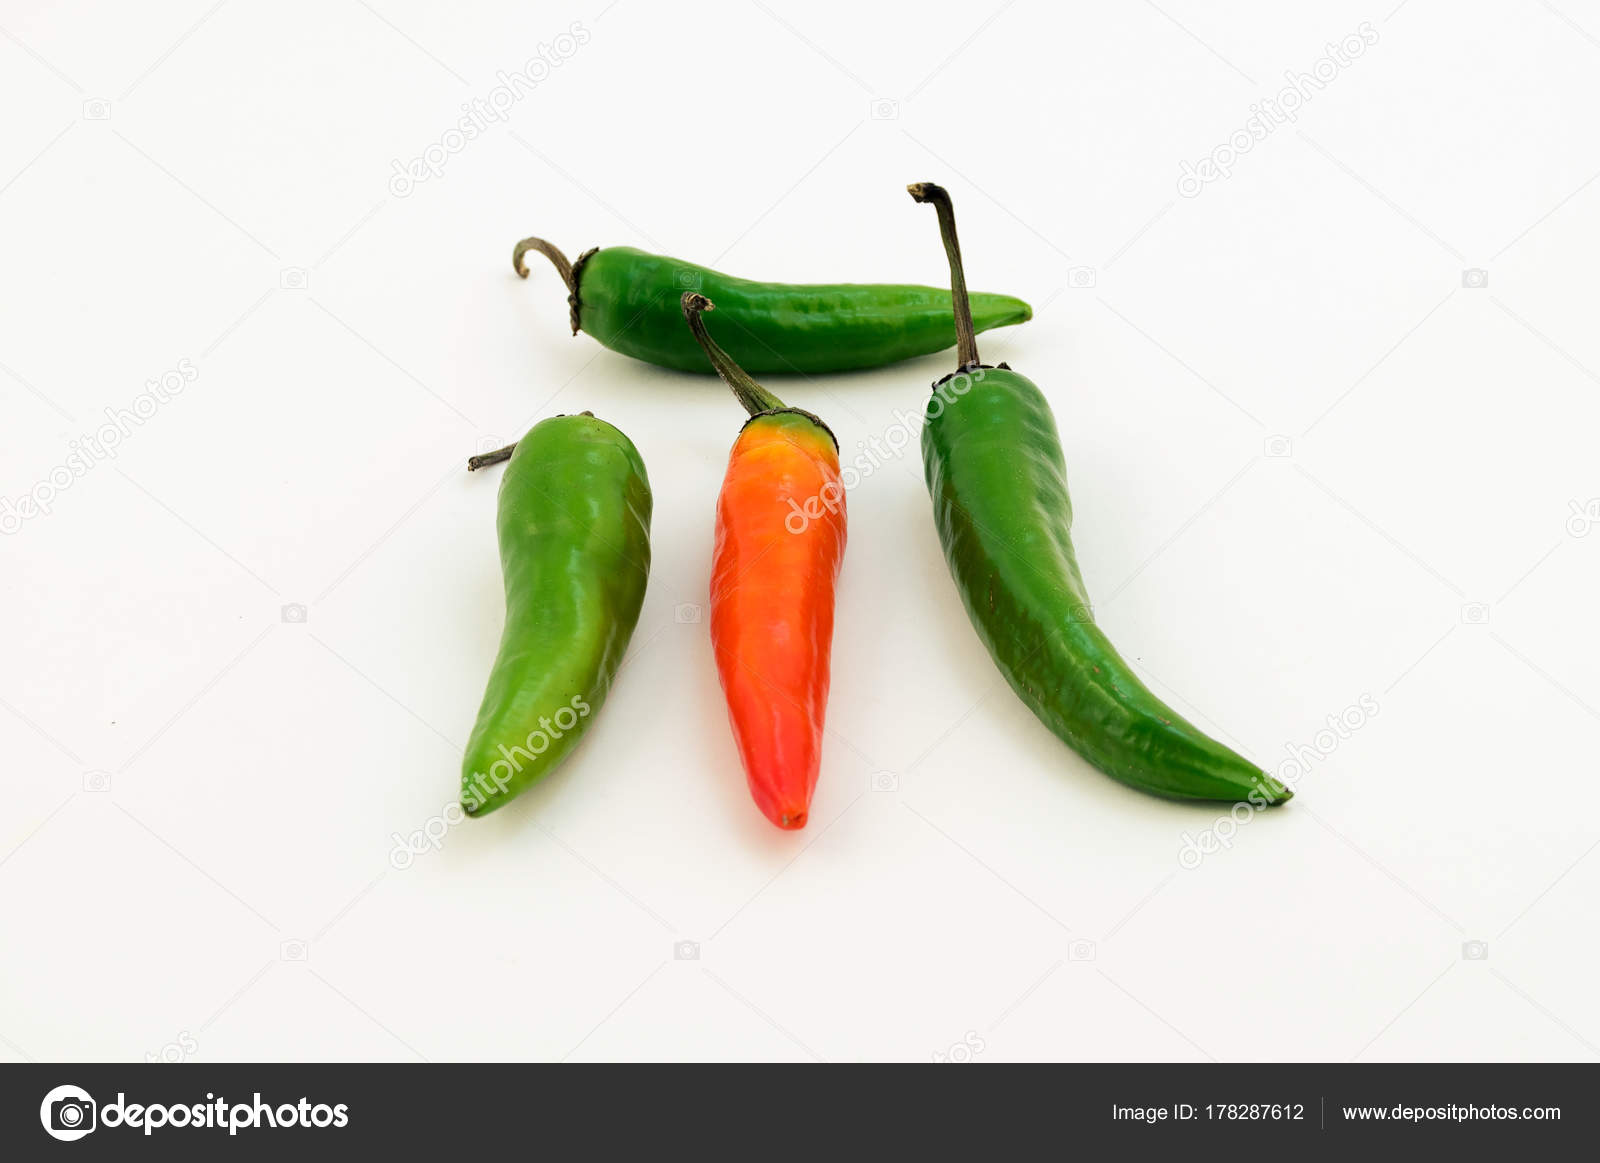 d407a5ef59ed Bitter Pepper Four Pieces Three Green One Orange — Stock Photo ...